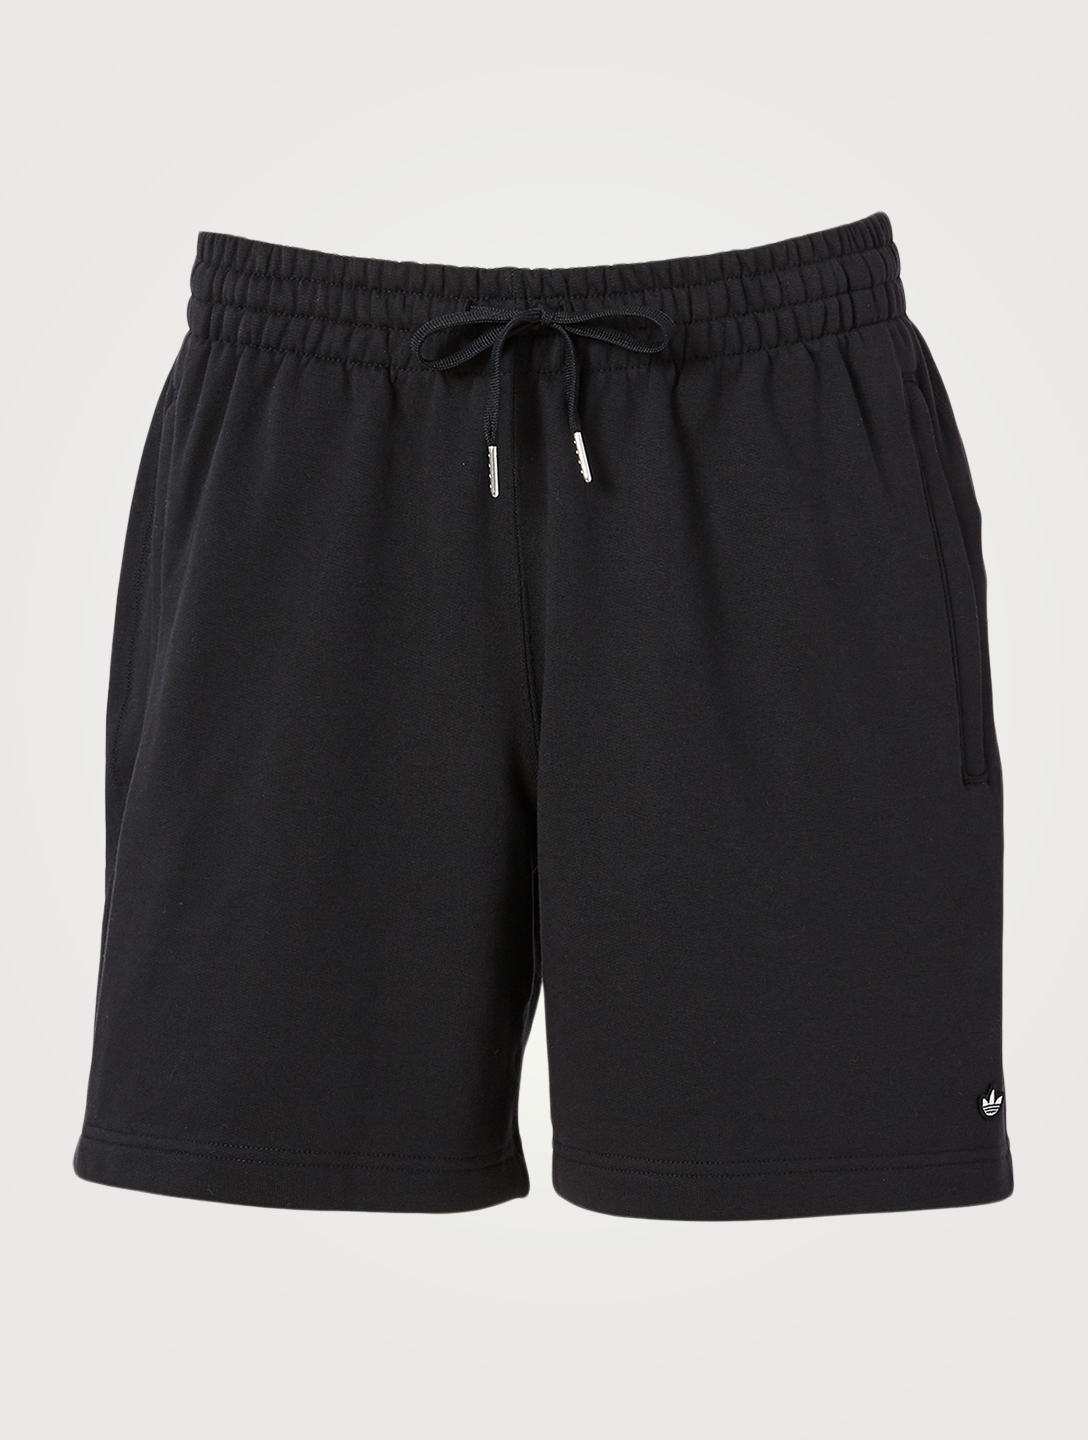 ADIDAS Adicolor Premium Organic Cotton Sweat Shorts Men's Black